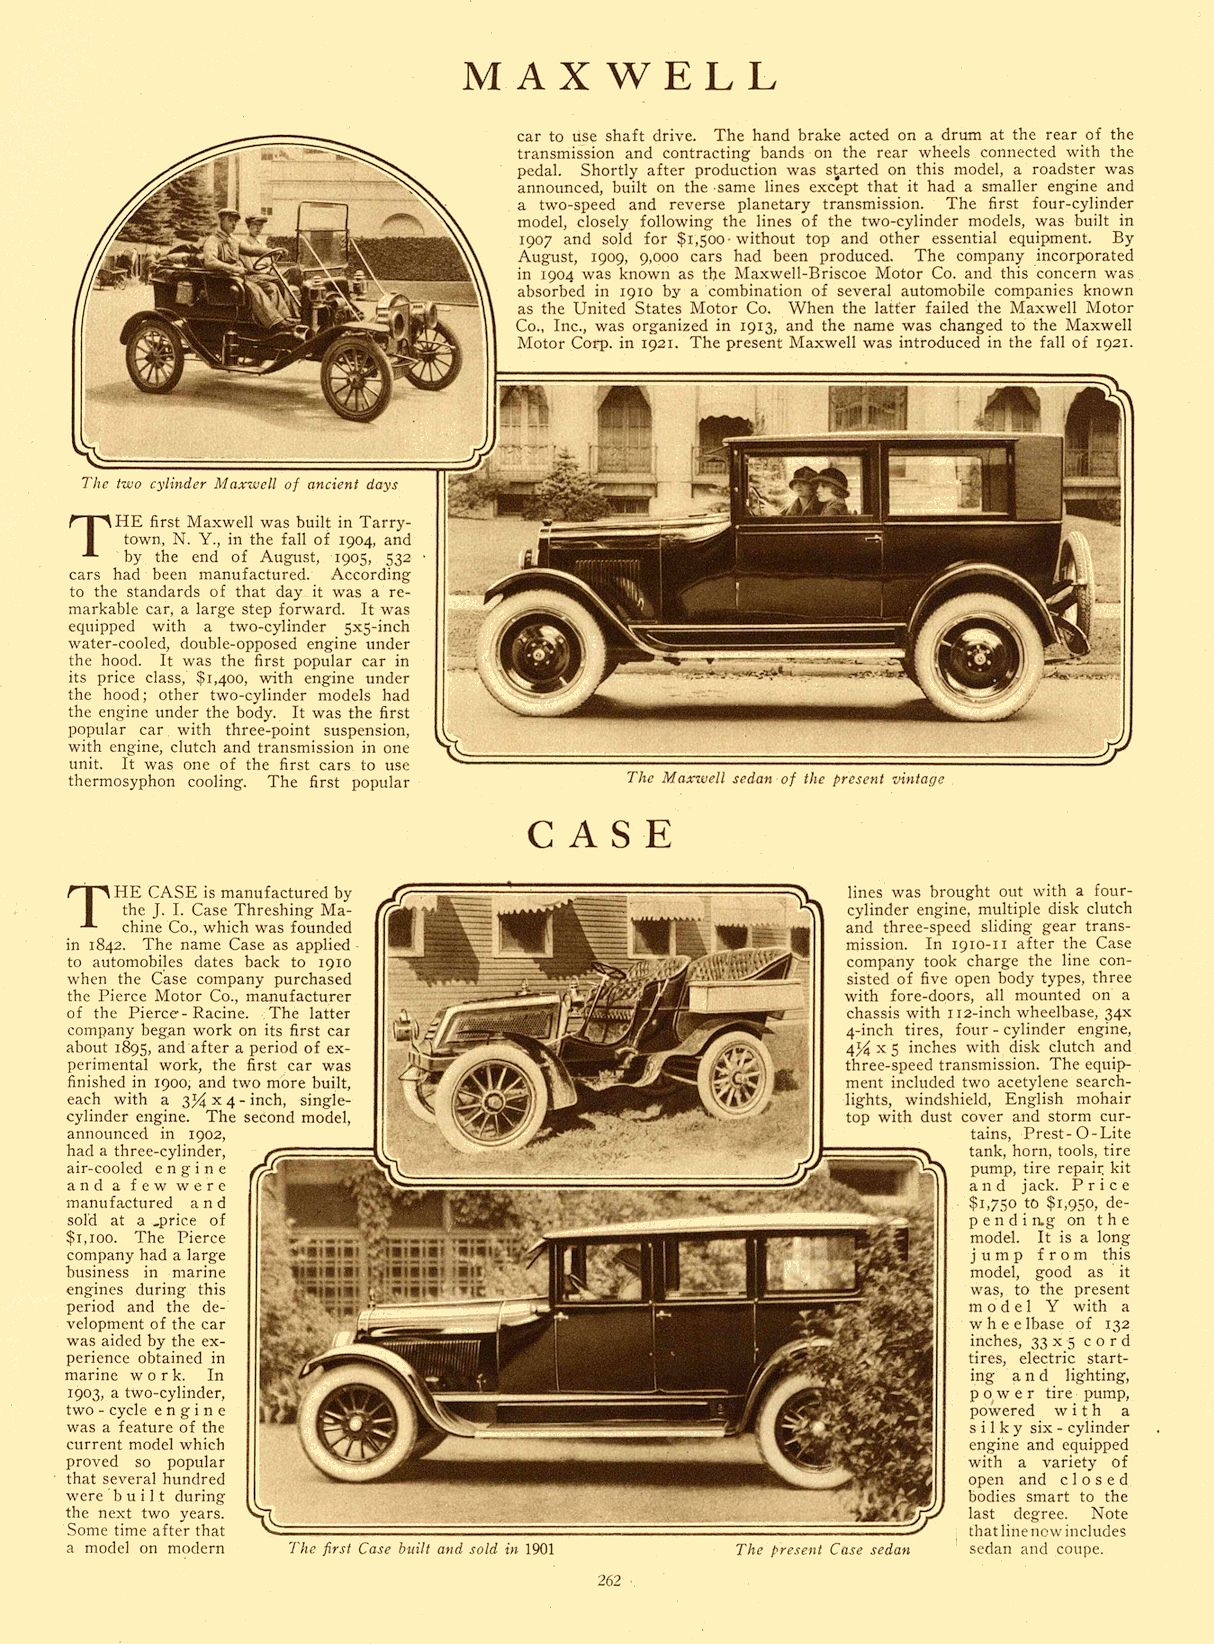 1924 Maxwell   1924 Case MoToR January 1924 Page 262 9.25″13.5″